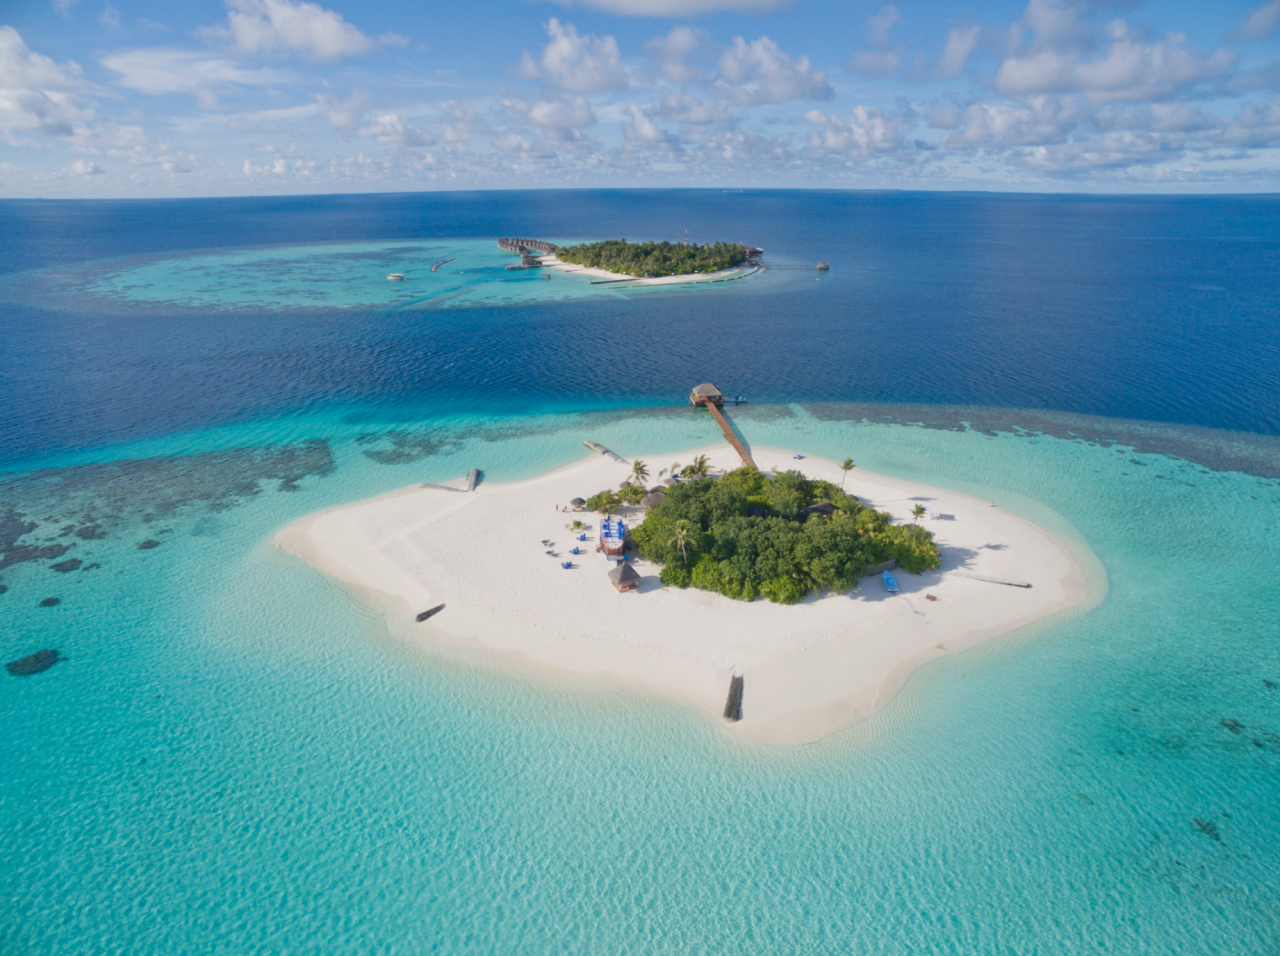 "<p><span>How about escaping to your own private island on the Maldives with your love? Lonubo Island is 500 metres away from Maafushivaru, another island in this romantic, white sand paradise. Lonubo is yours from 4.30pm until 9.30am the following day, and rooms feature king-sized beds, rain showers and a terrace. </span><a rel=""nofollow"" href=""http://www.kuoni.co.uk/""><span>Kuoni</span></a><span> has seven nights full board at the 5* Maafushivaru from £2,323pp including flights. To book, quote IO0625. [Photo: Kuoni]</span> </p>"